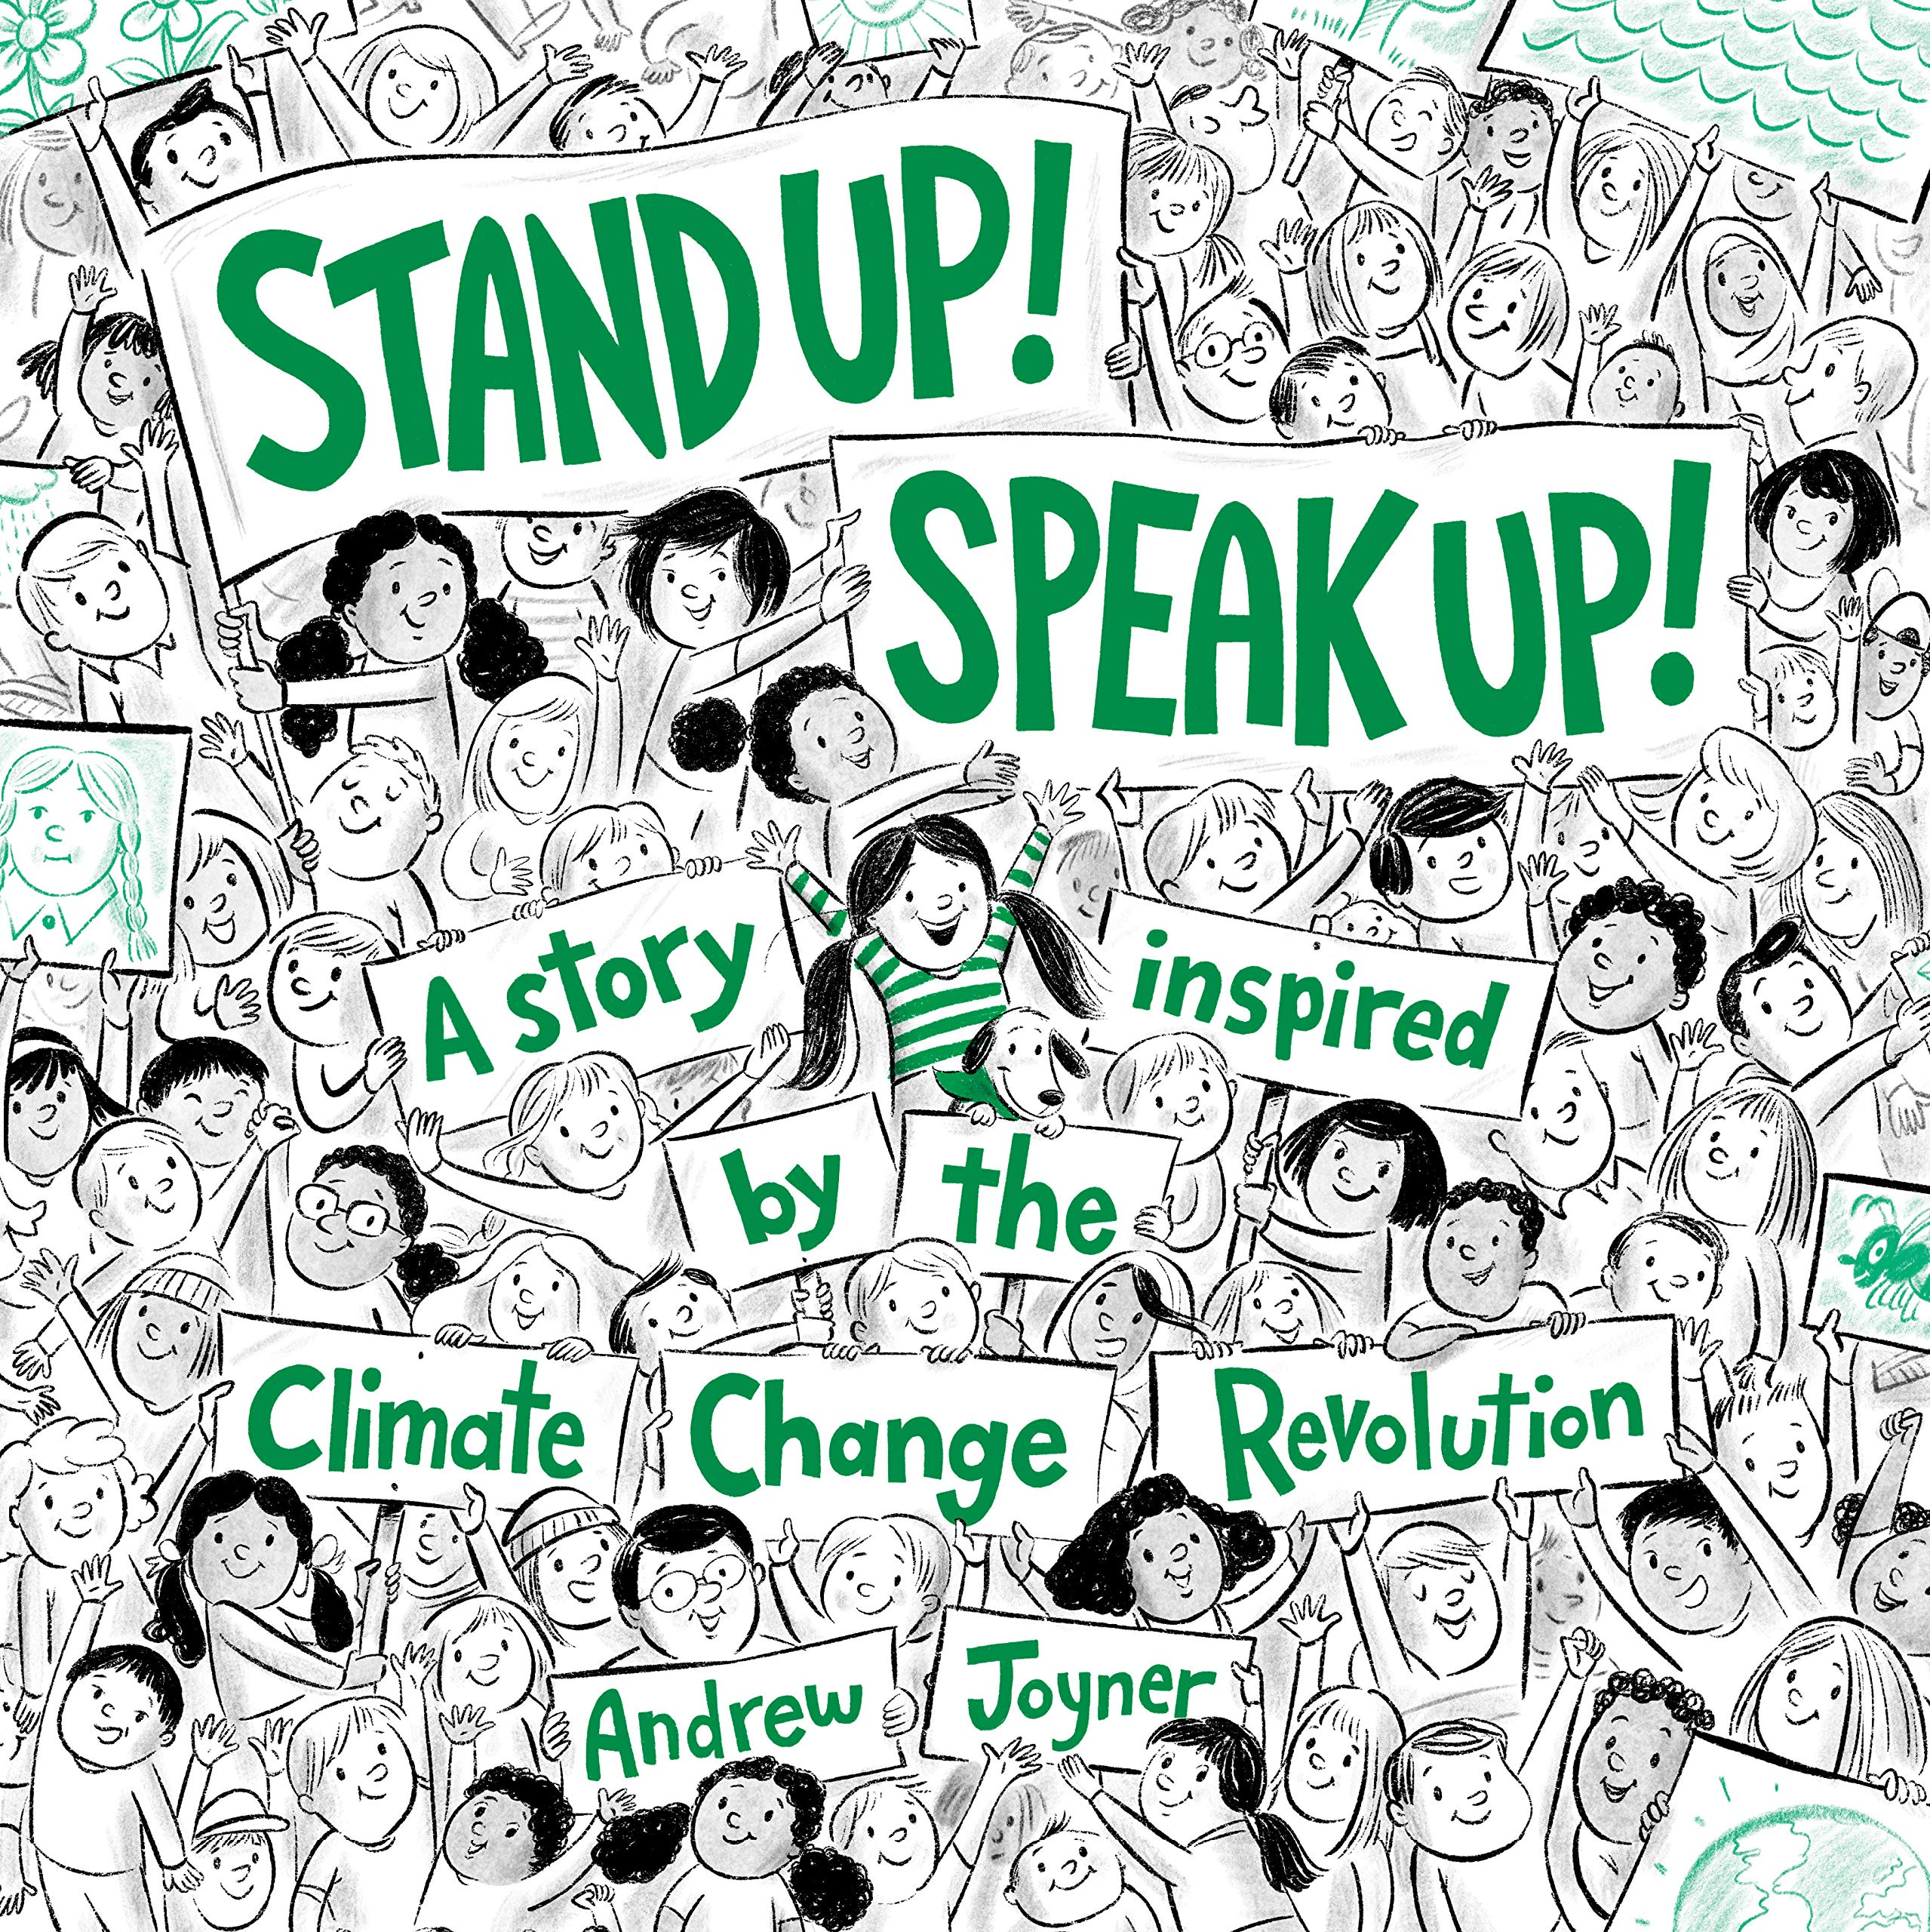 Stand Up! Speak Up!: A Story Inspired by the Climate Change Revolution:  Joyner, Andrew: 9780593301586: Amazon.com: Books